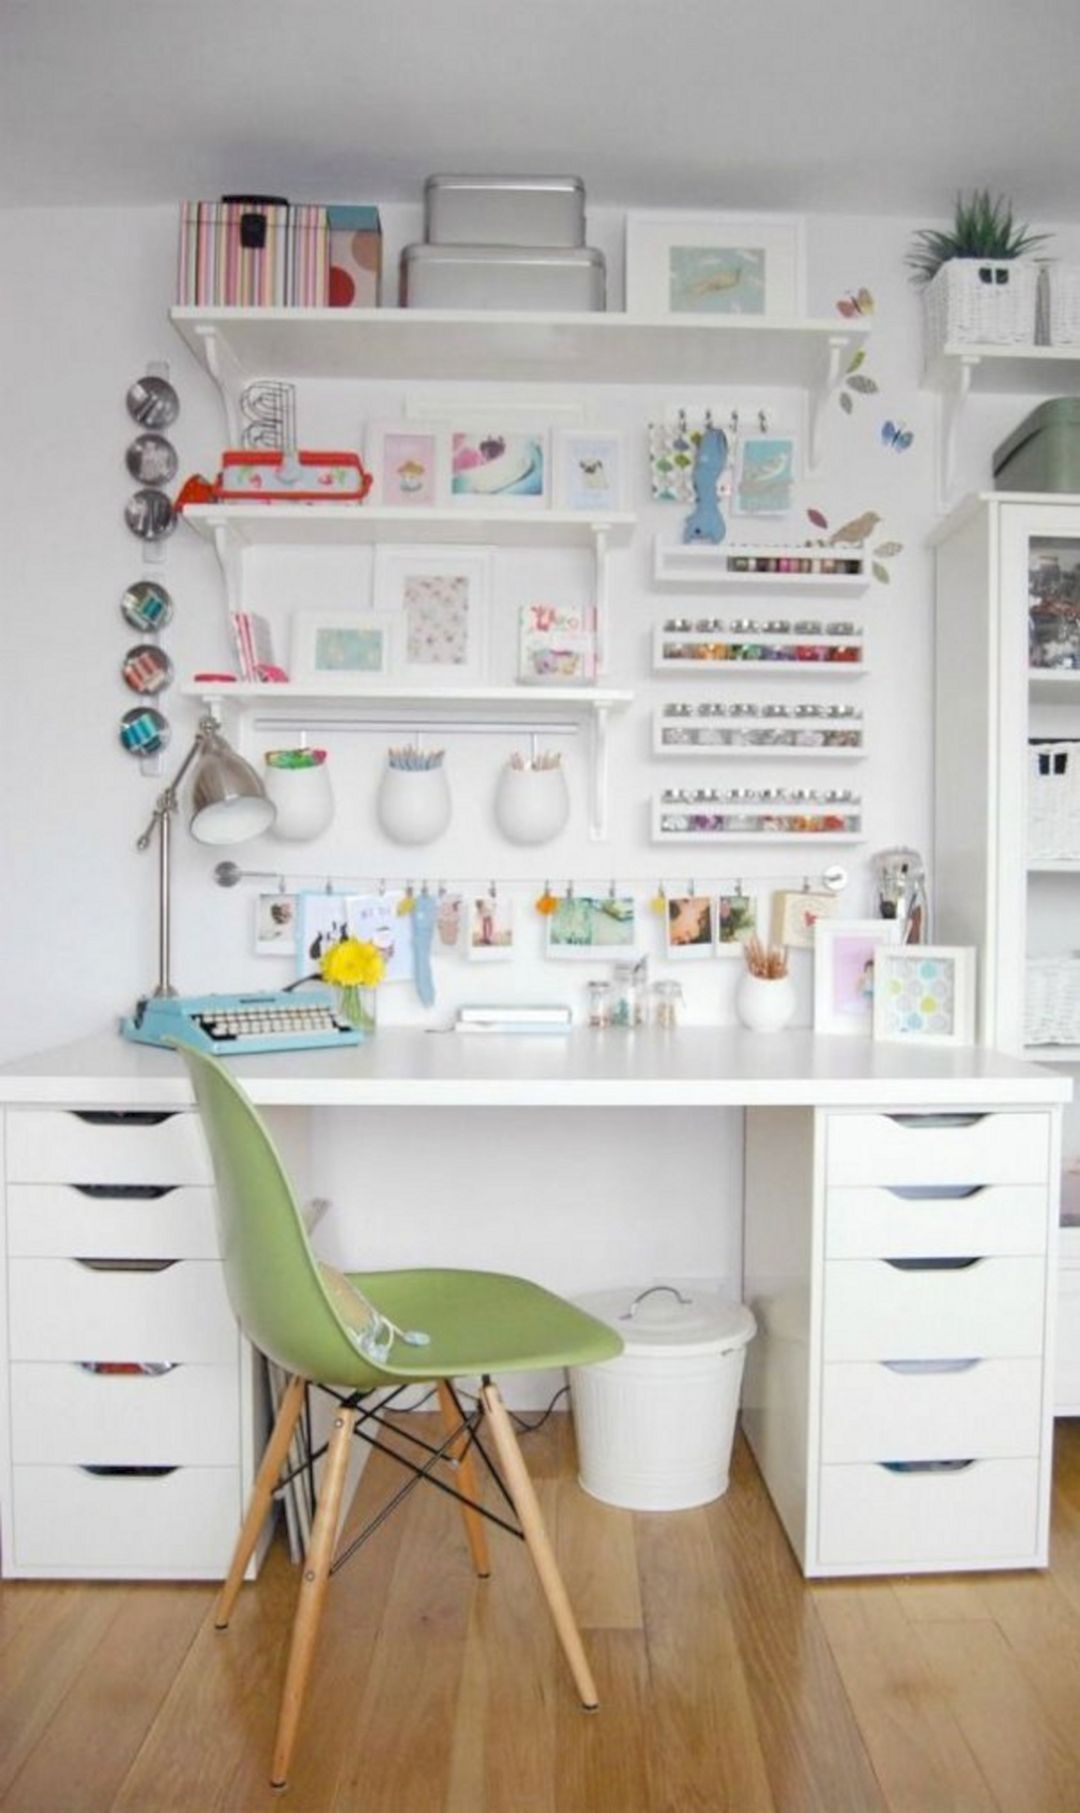 12 Best Ikea Craft Room Ideas With Stunning Storage Organization